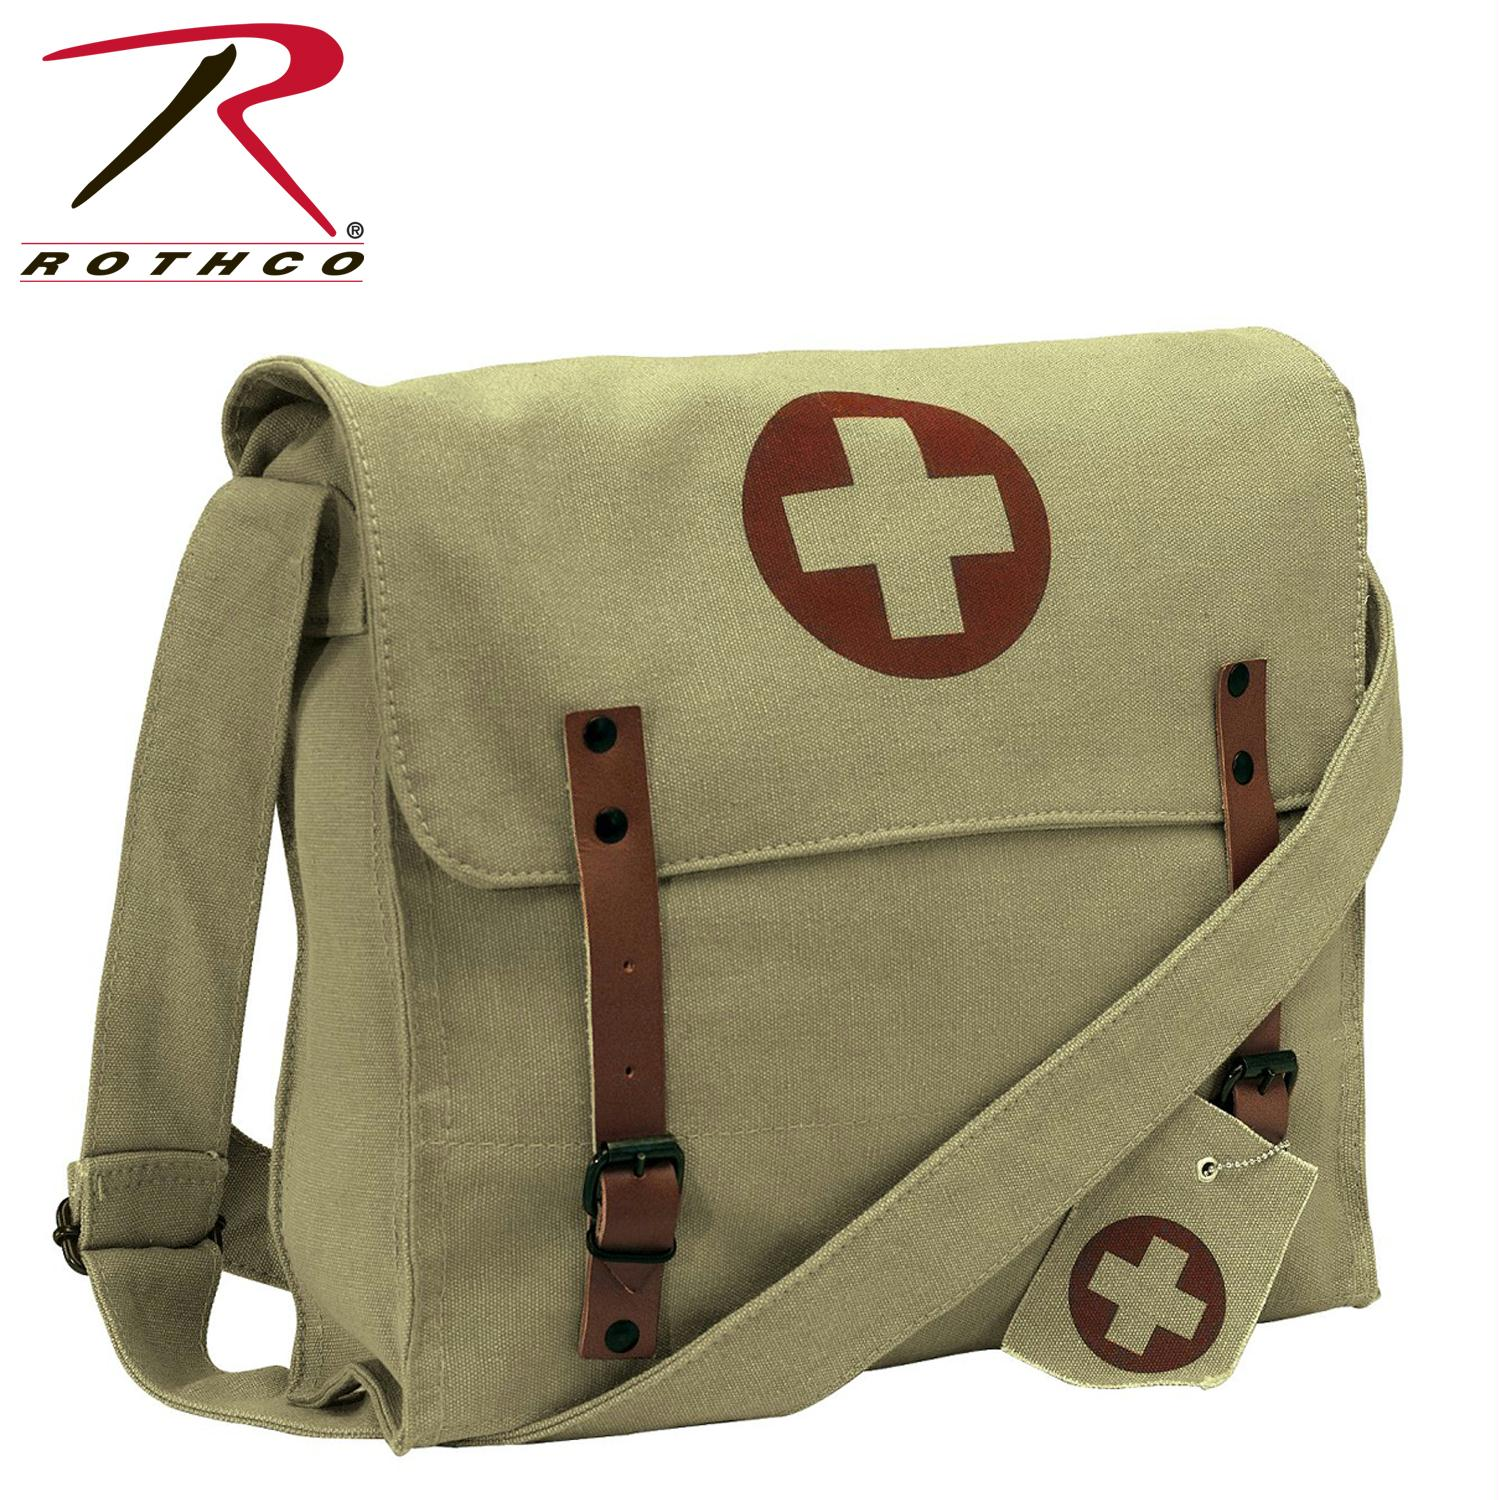 Rothco Vintage Medic Bag w/ Cross